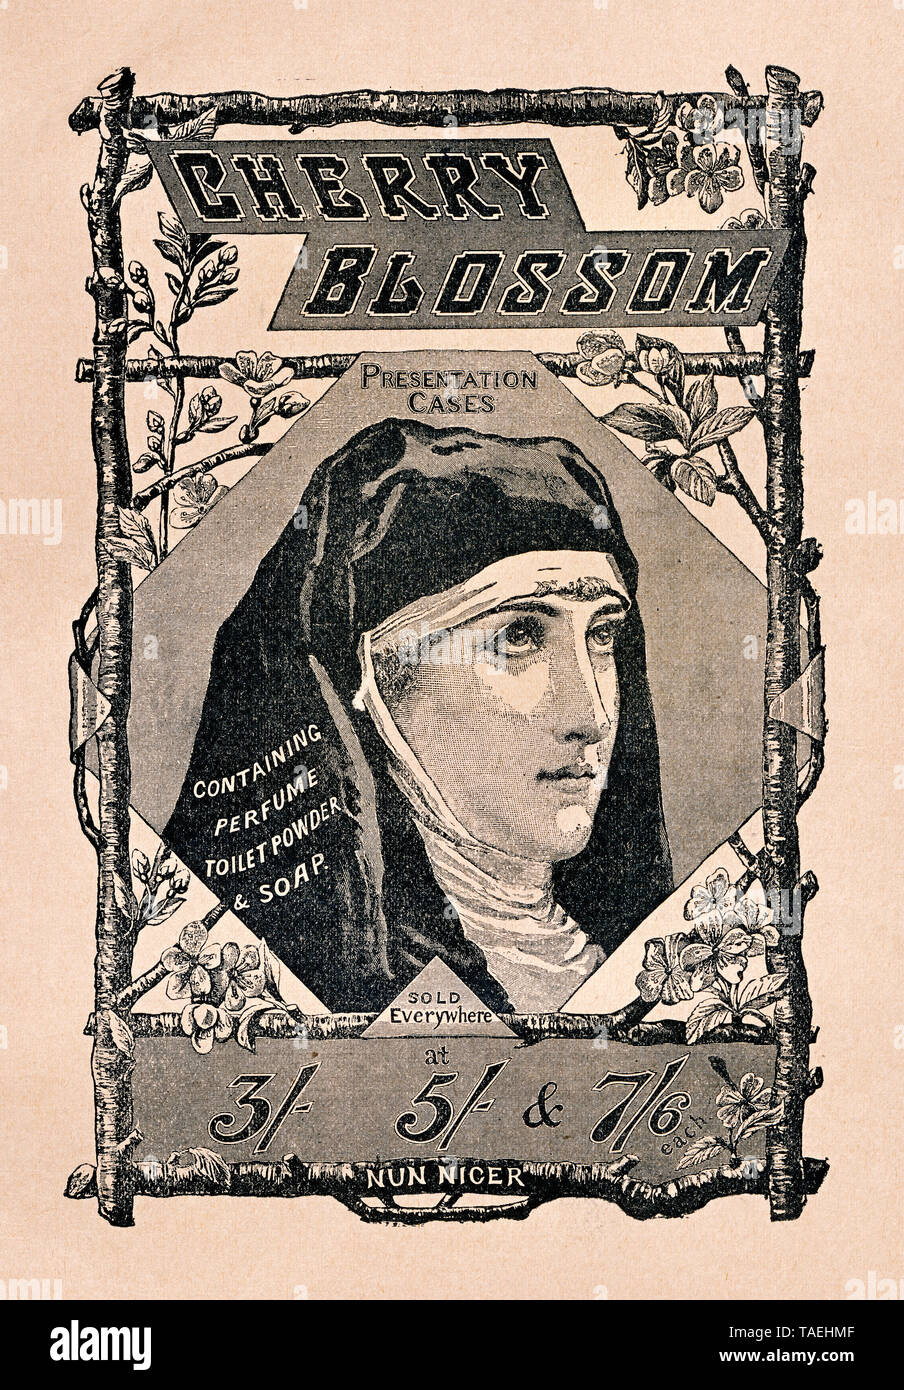 Eine Nonne wirbt für Seife, Parfüm und Toilet Powder, Englische Anzeigenwerbung aus 'The Idler, Merritt & Hatcher, London' von 1893 für 'Cherry Blossom Perfume Soap toilet powder, NUN NICER', Großbritannien, Europa - Stock Image